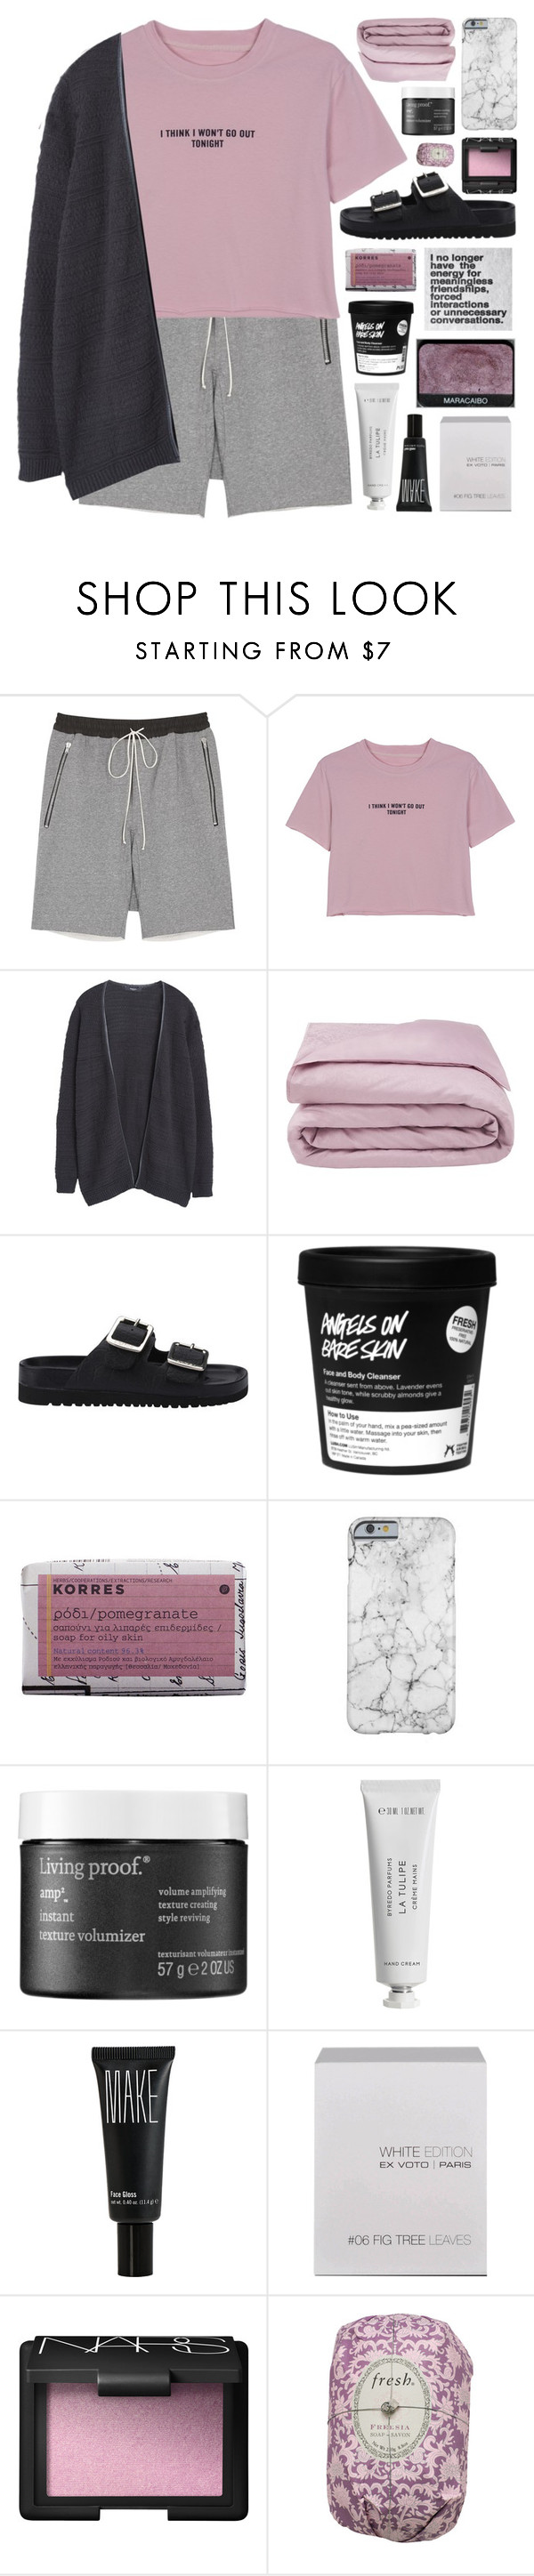 """""""WON'T GO OUT TONIGHT // top set 14.08.16"""" by emmas-fashion-diary ❤ liked on Polyvore featuring WithChic, MANGO, Frette, Senso, Korres, NARS Cosmetics, Living Proof, Byredo, Make and Ex Voto Paris"""